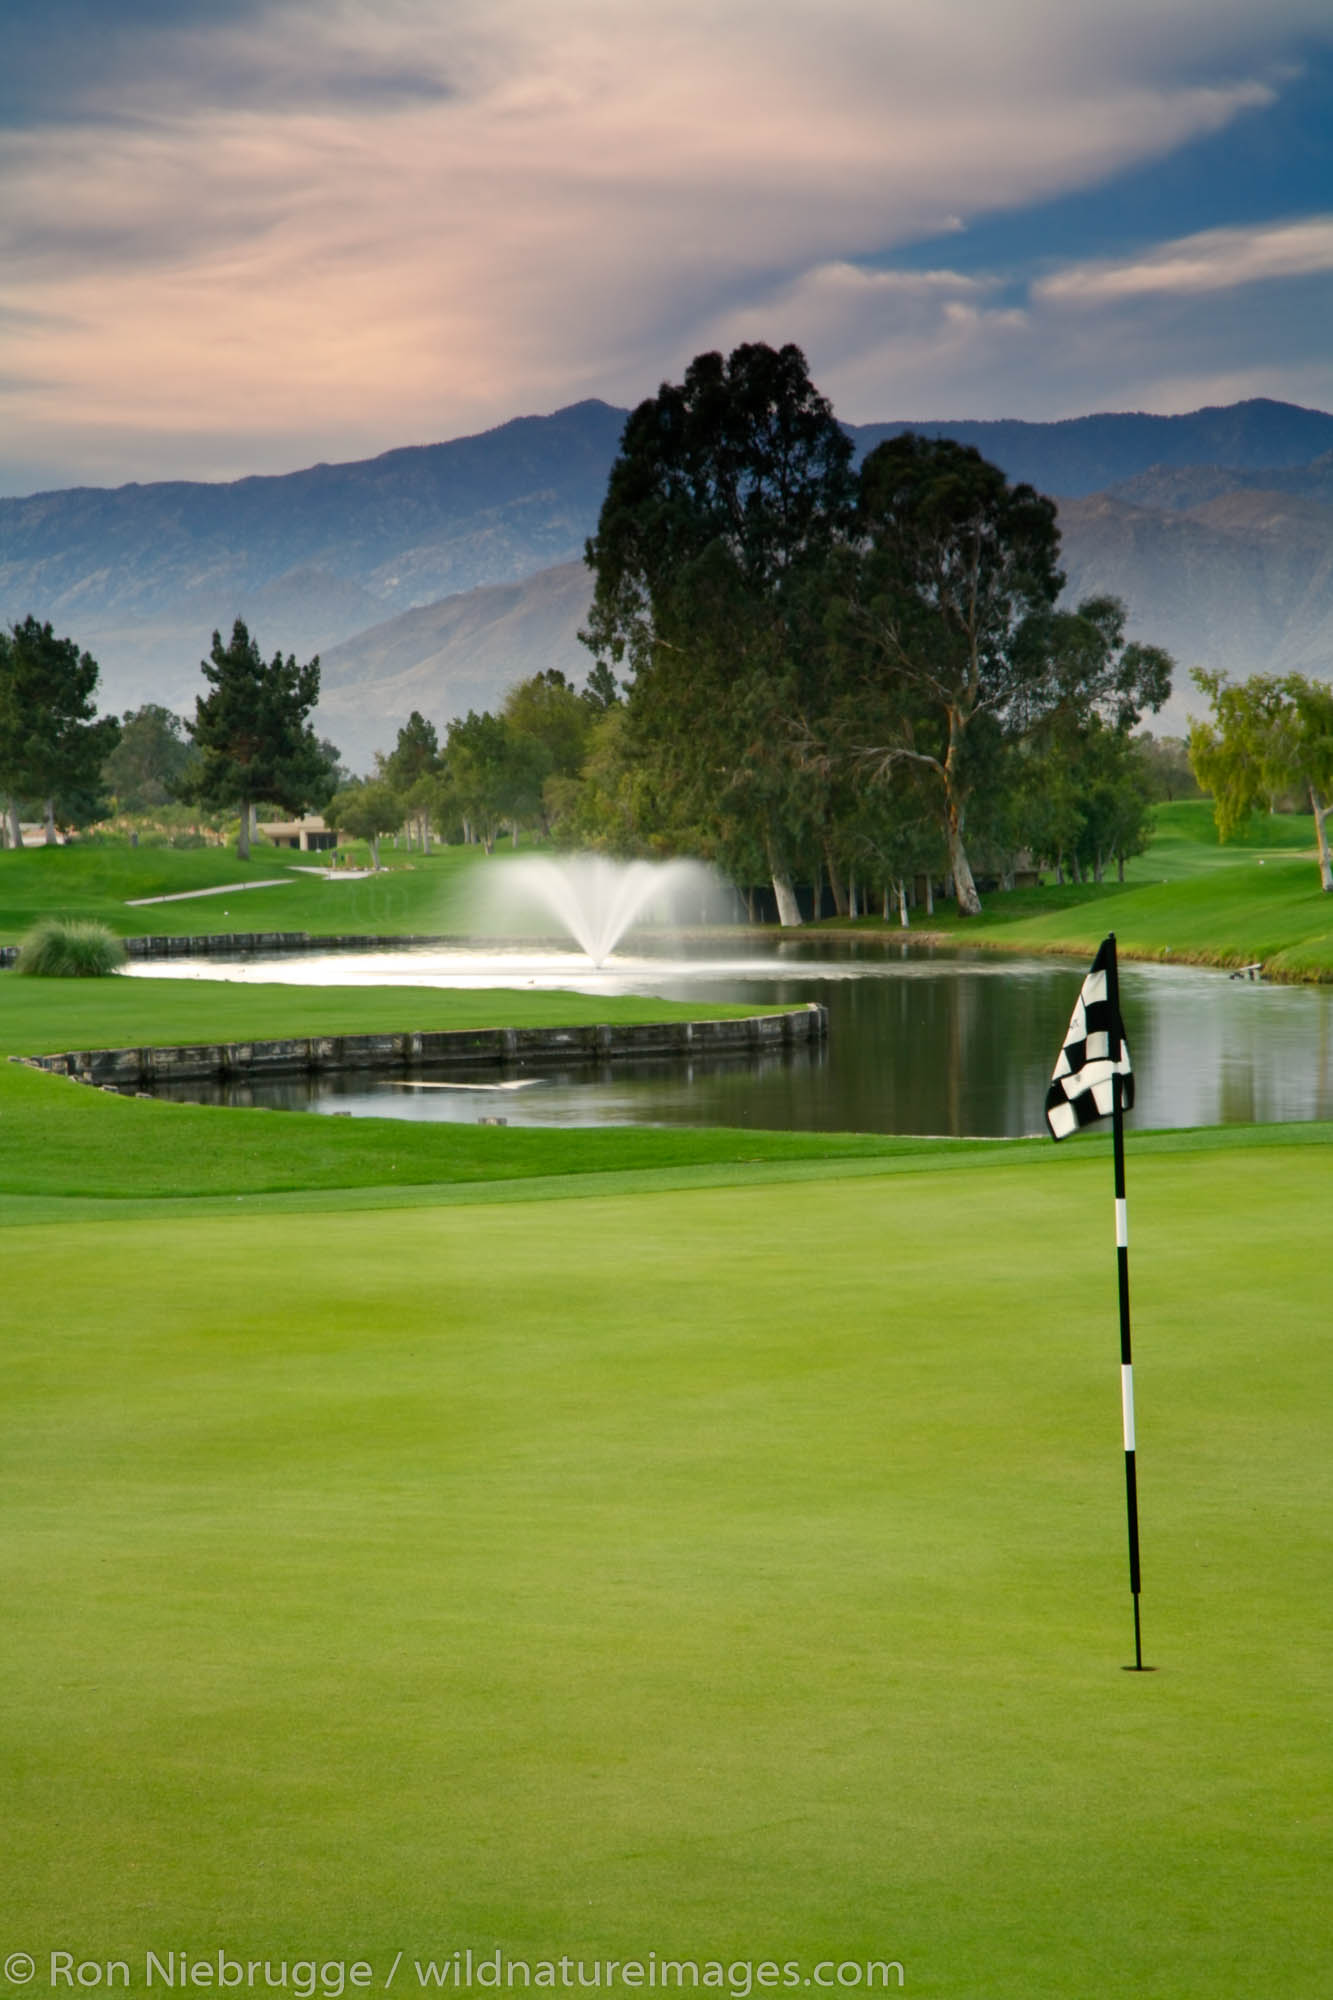 The 18th hole on the golf course at the Westin Mission Hills Resort and Spa in Rancho Mirage near Palm Springs, California.